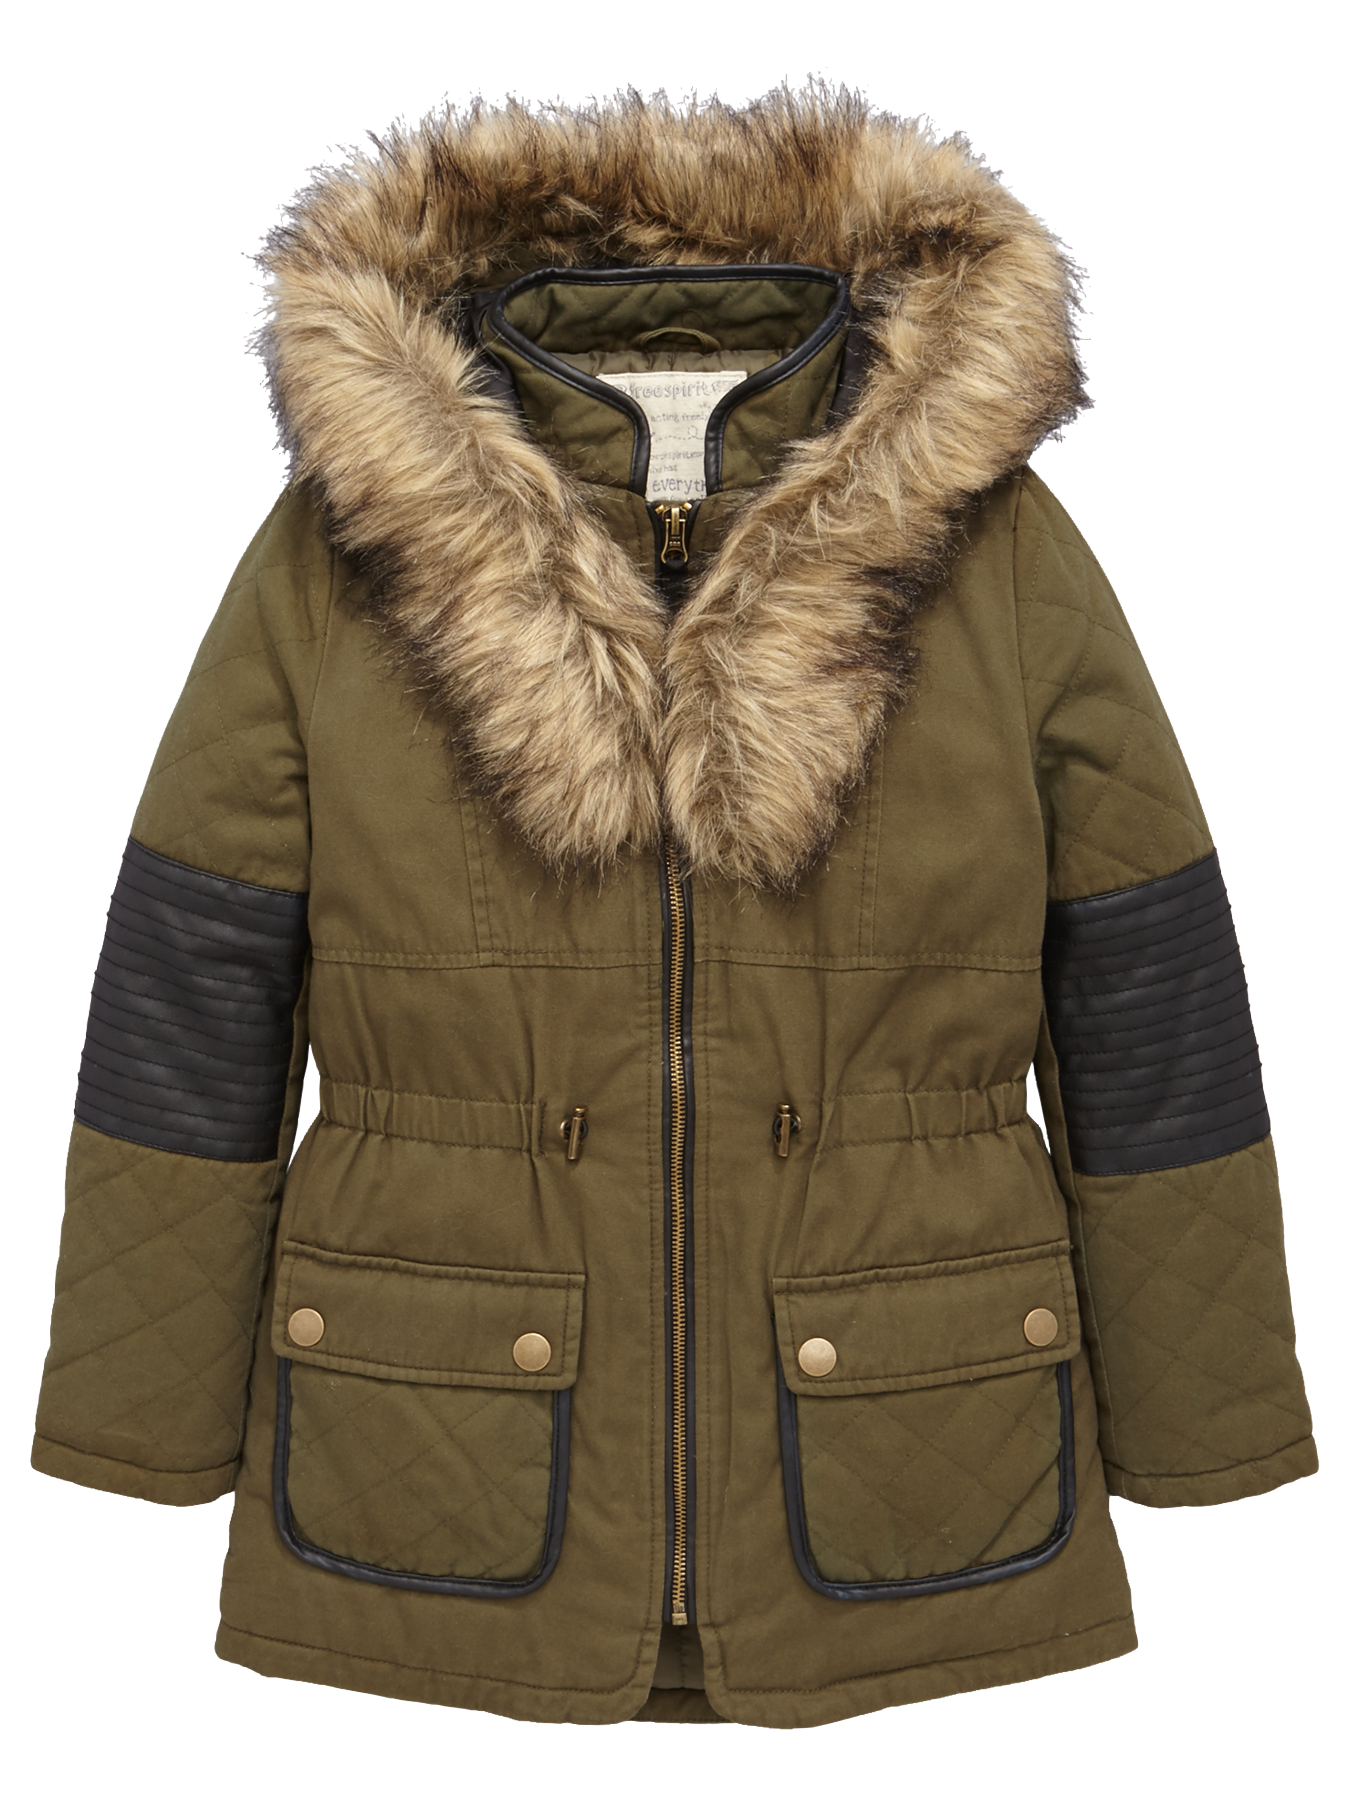 10 gorgeous winter coats to keep your littles warm this ...